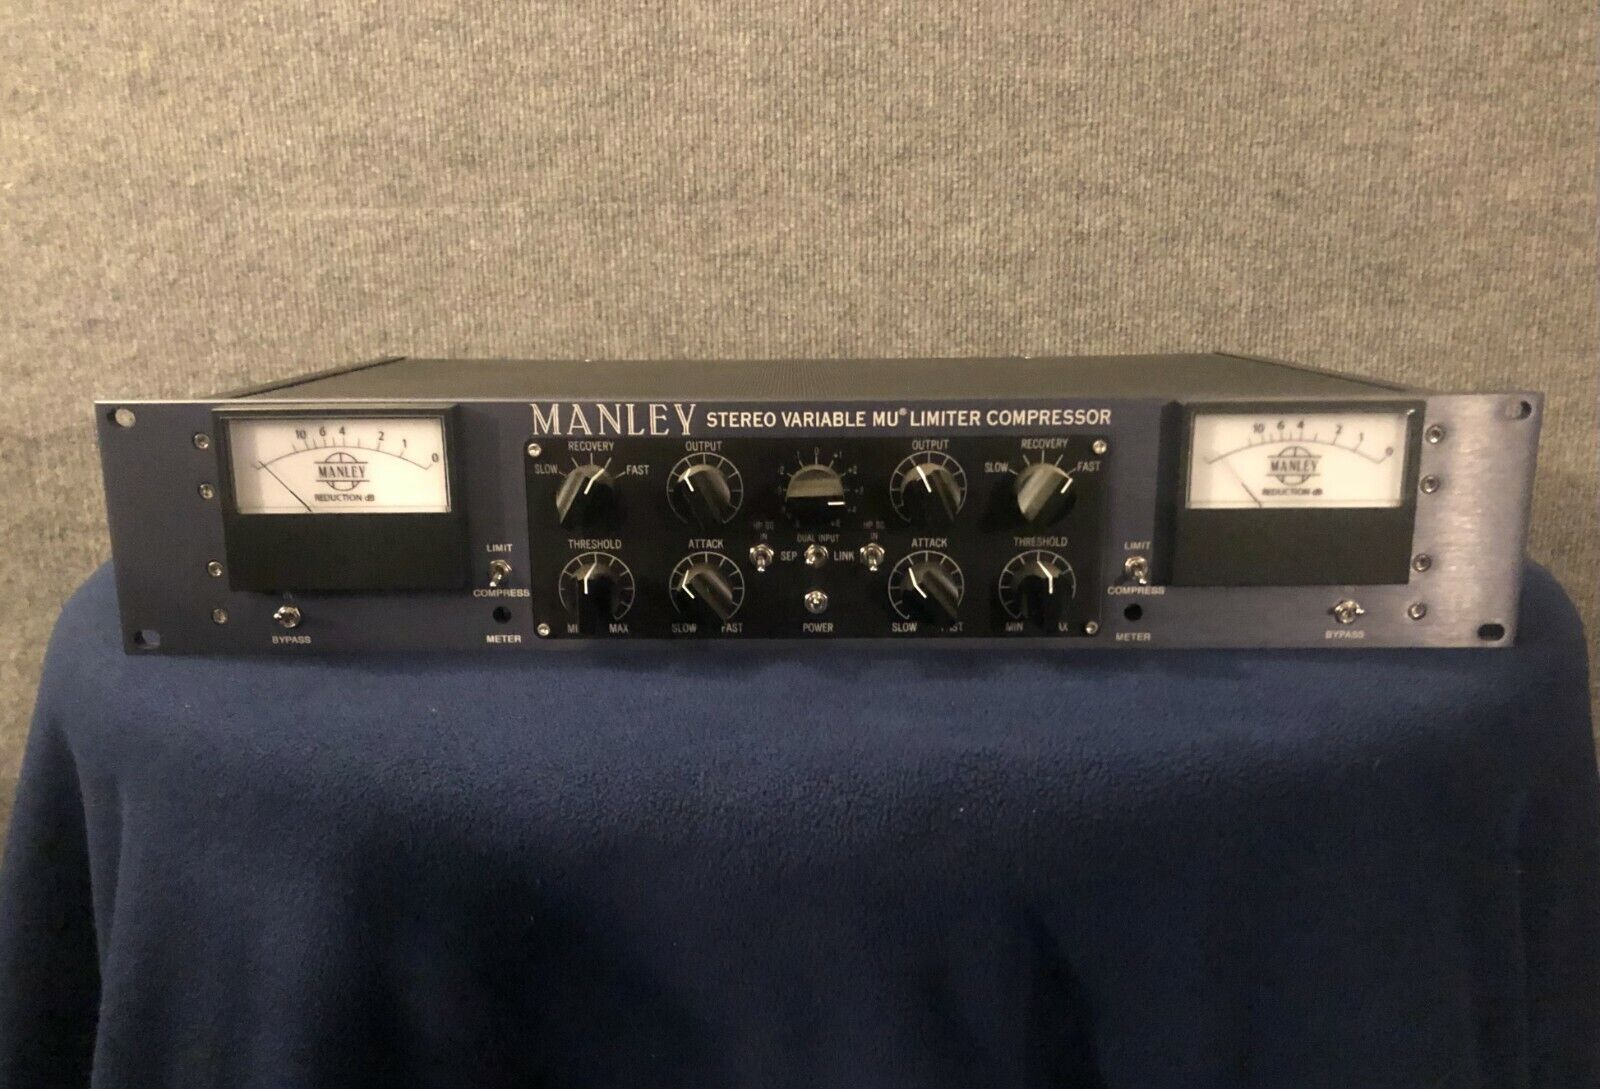 Manley Stereo Variable Mu Limiter Compressor - Used - Very Good Condition. Buy it now for 3700.00